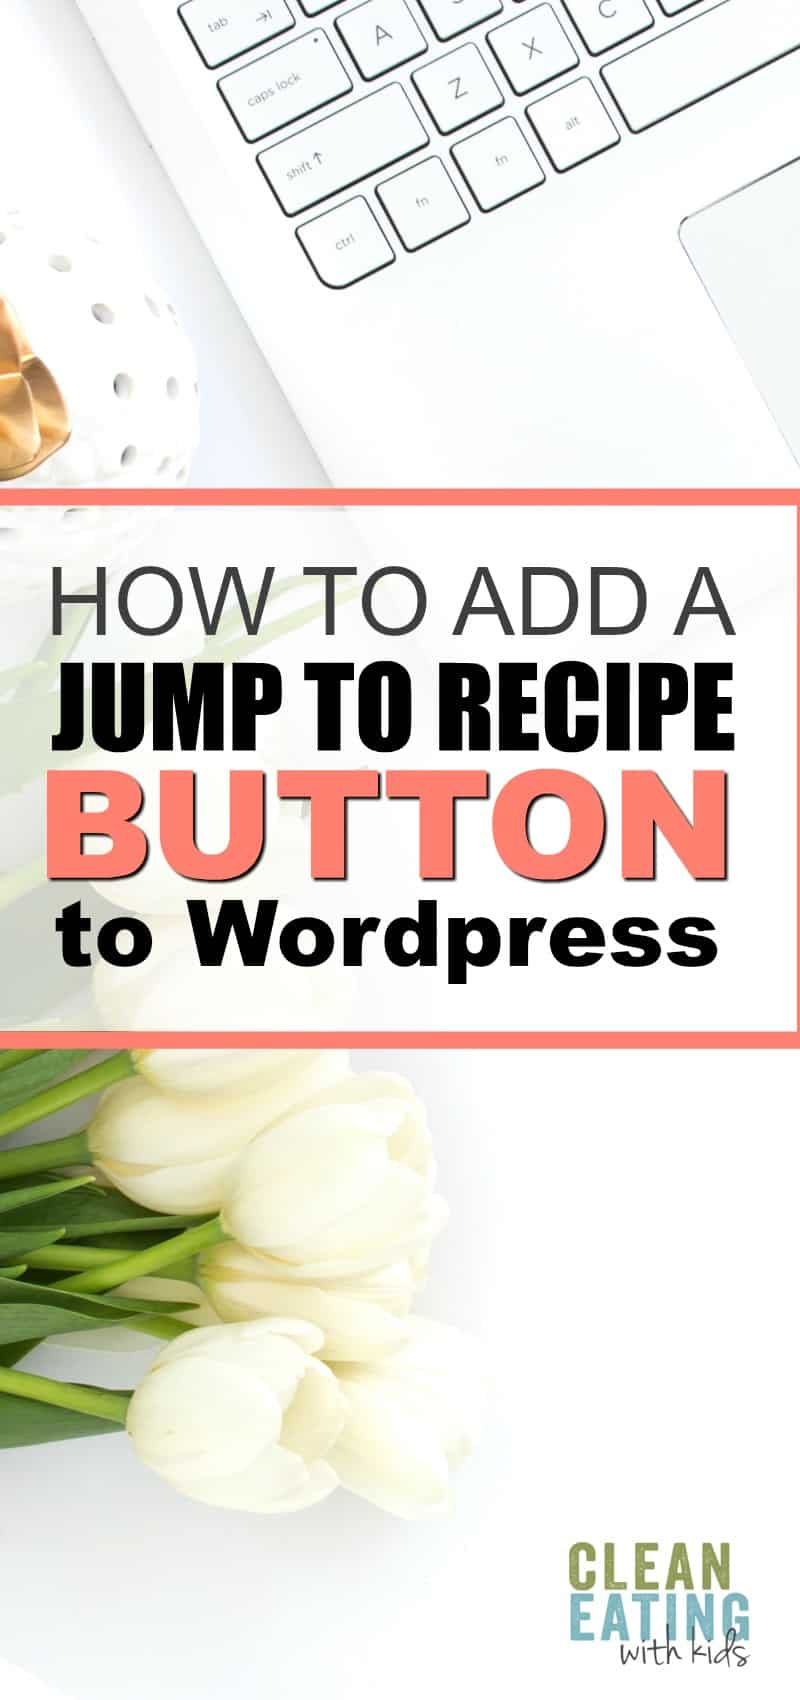 How to Add a Jump to Recipe Button or Link to WordPress